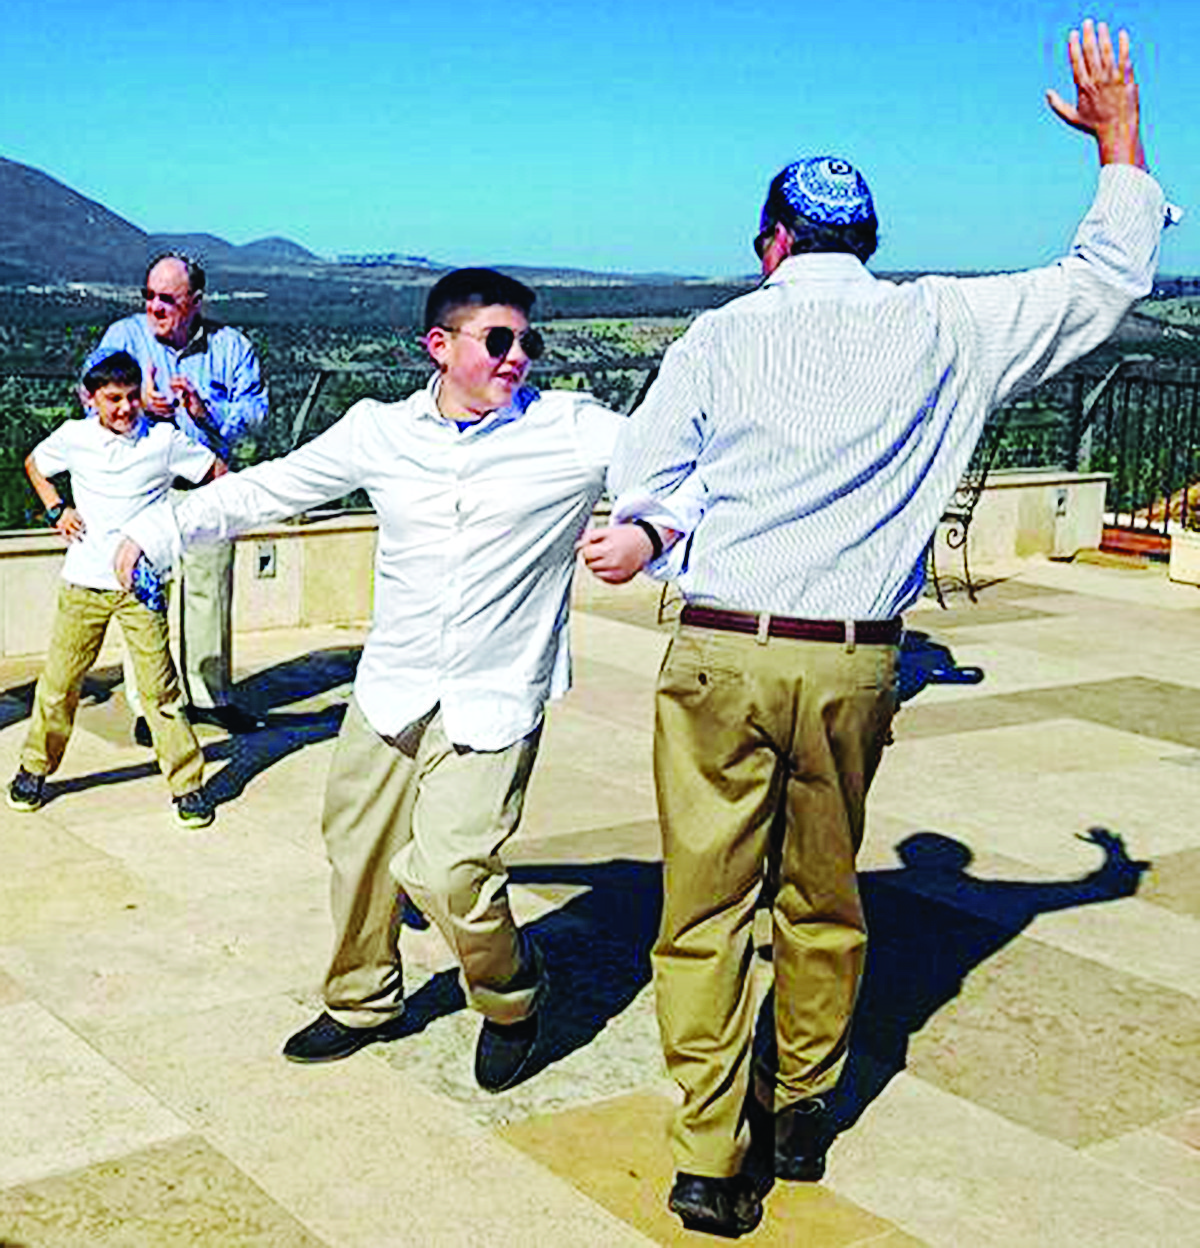 Reese Sock dances during his Bar Mitzvah trip to Israel.